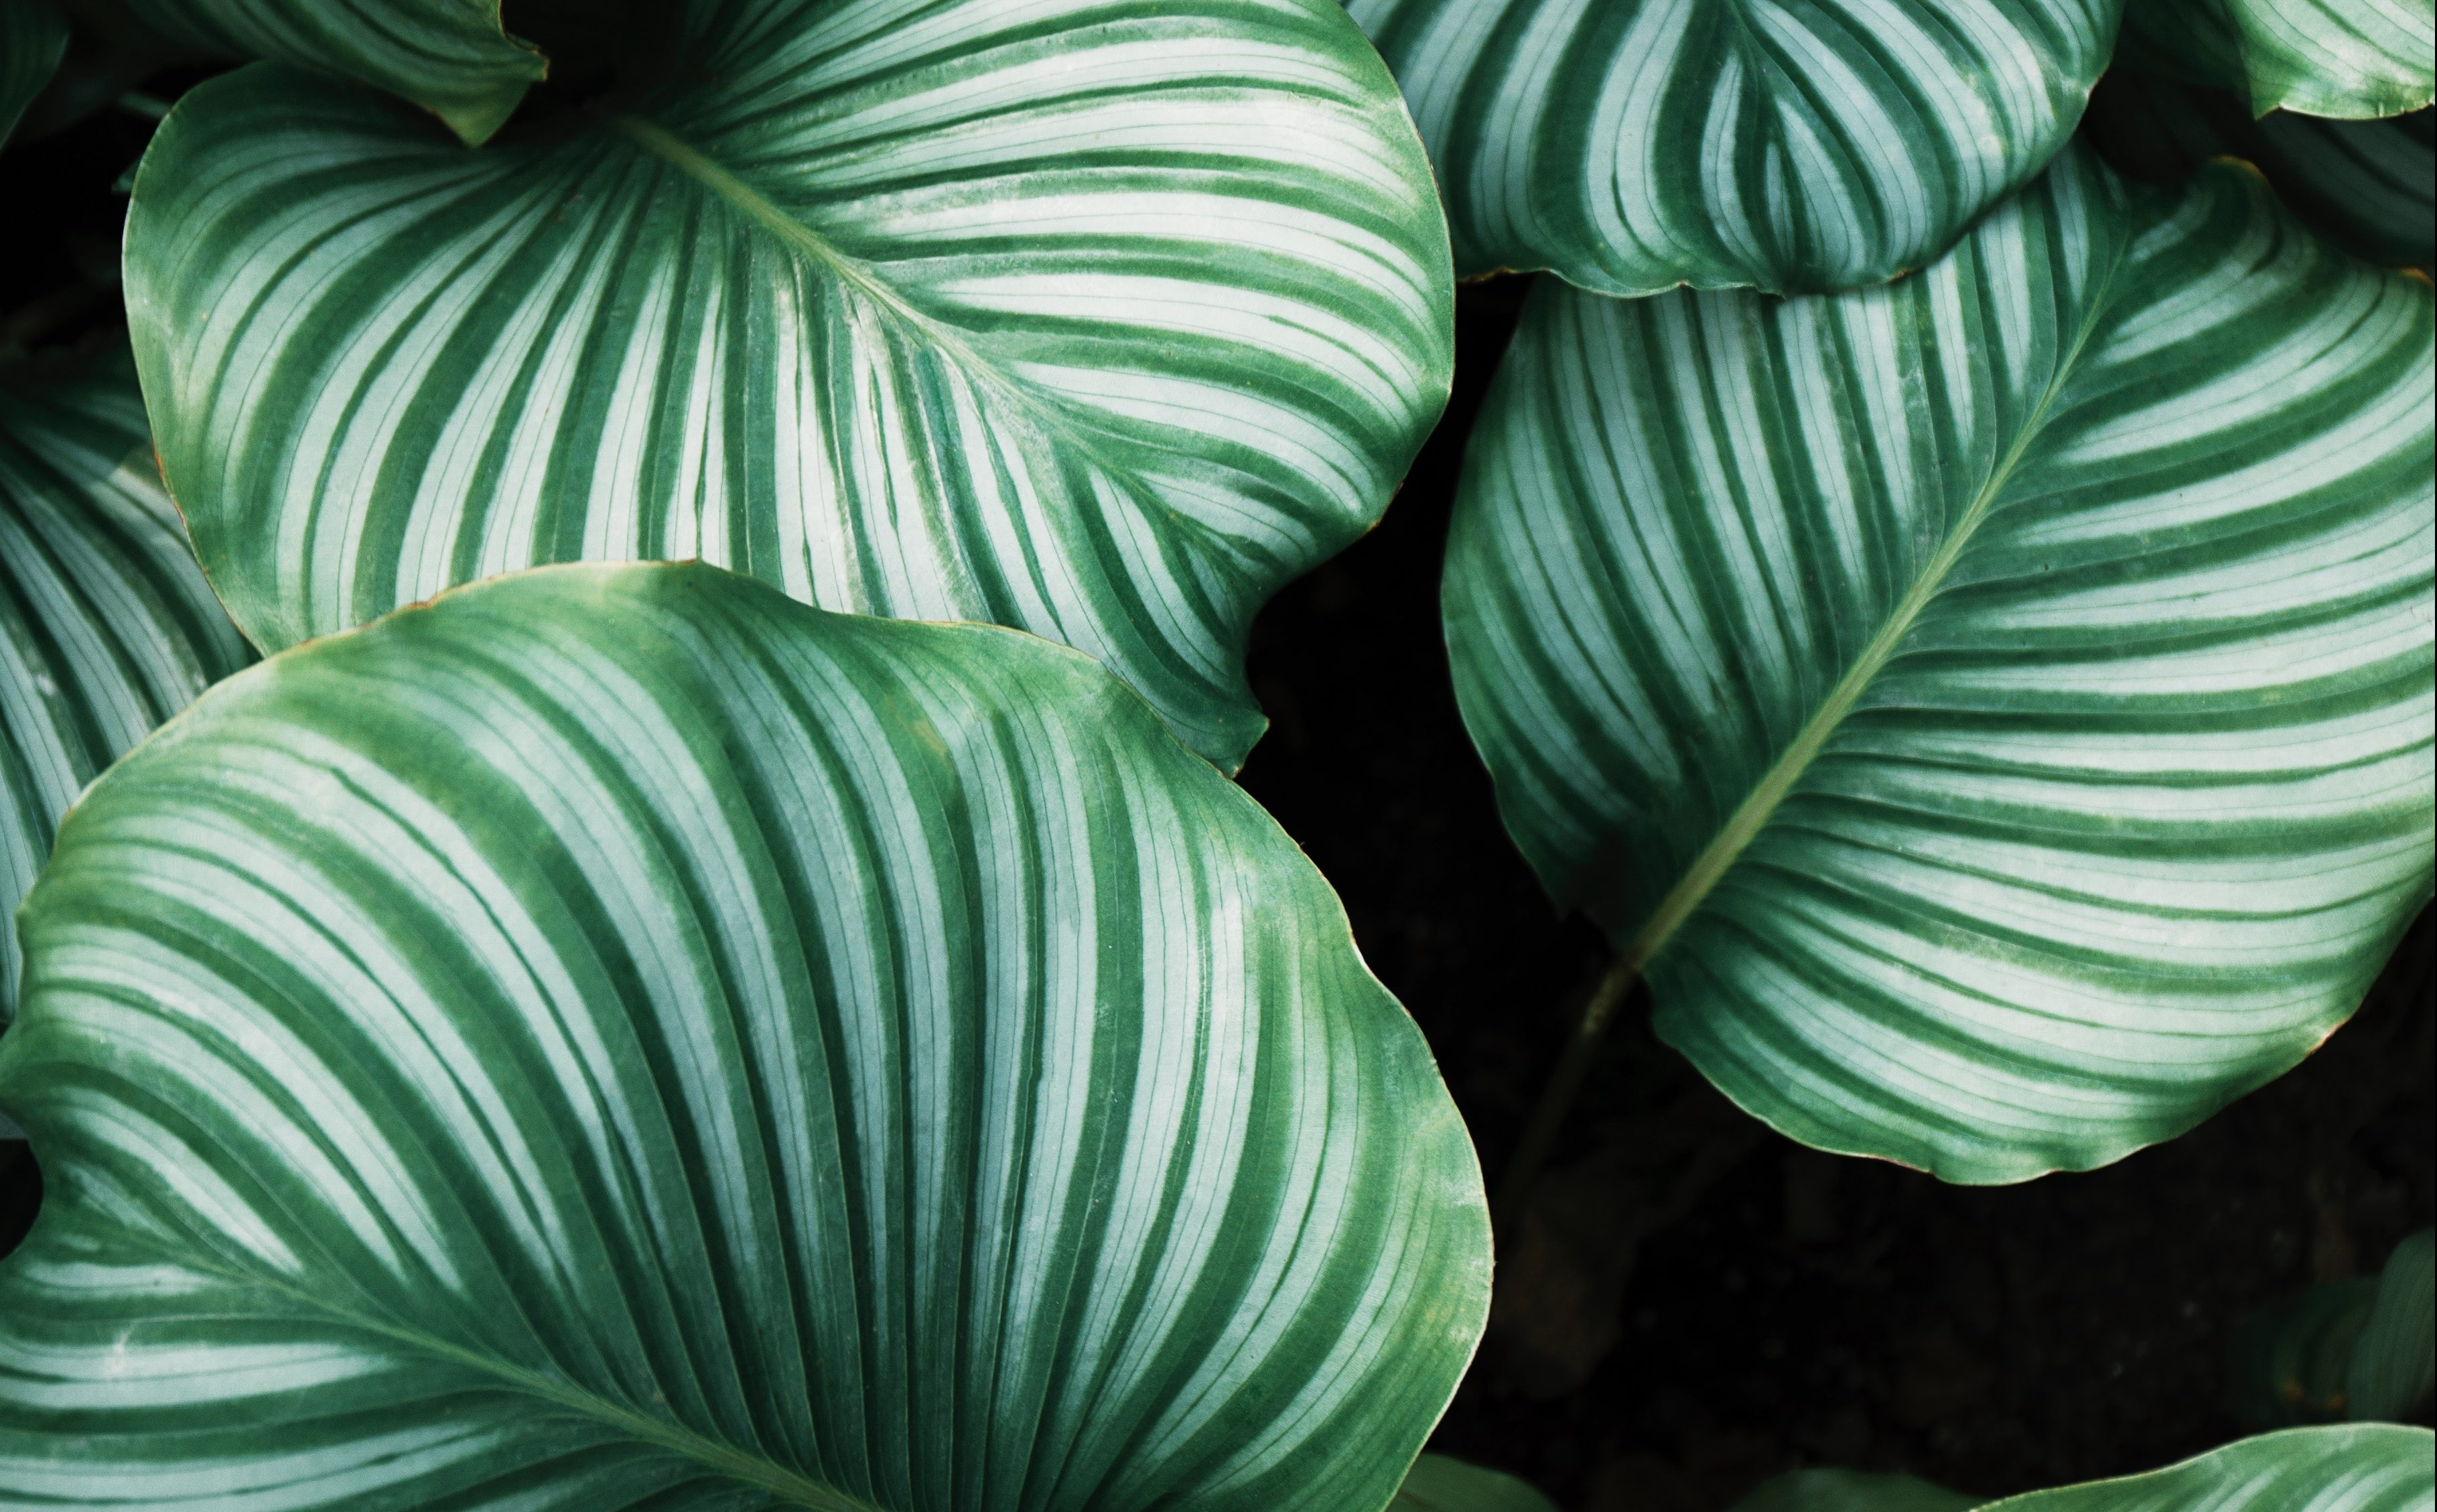 Image shows a photo of a leafy plant